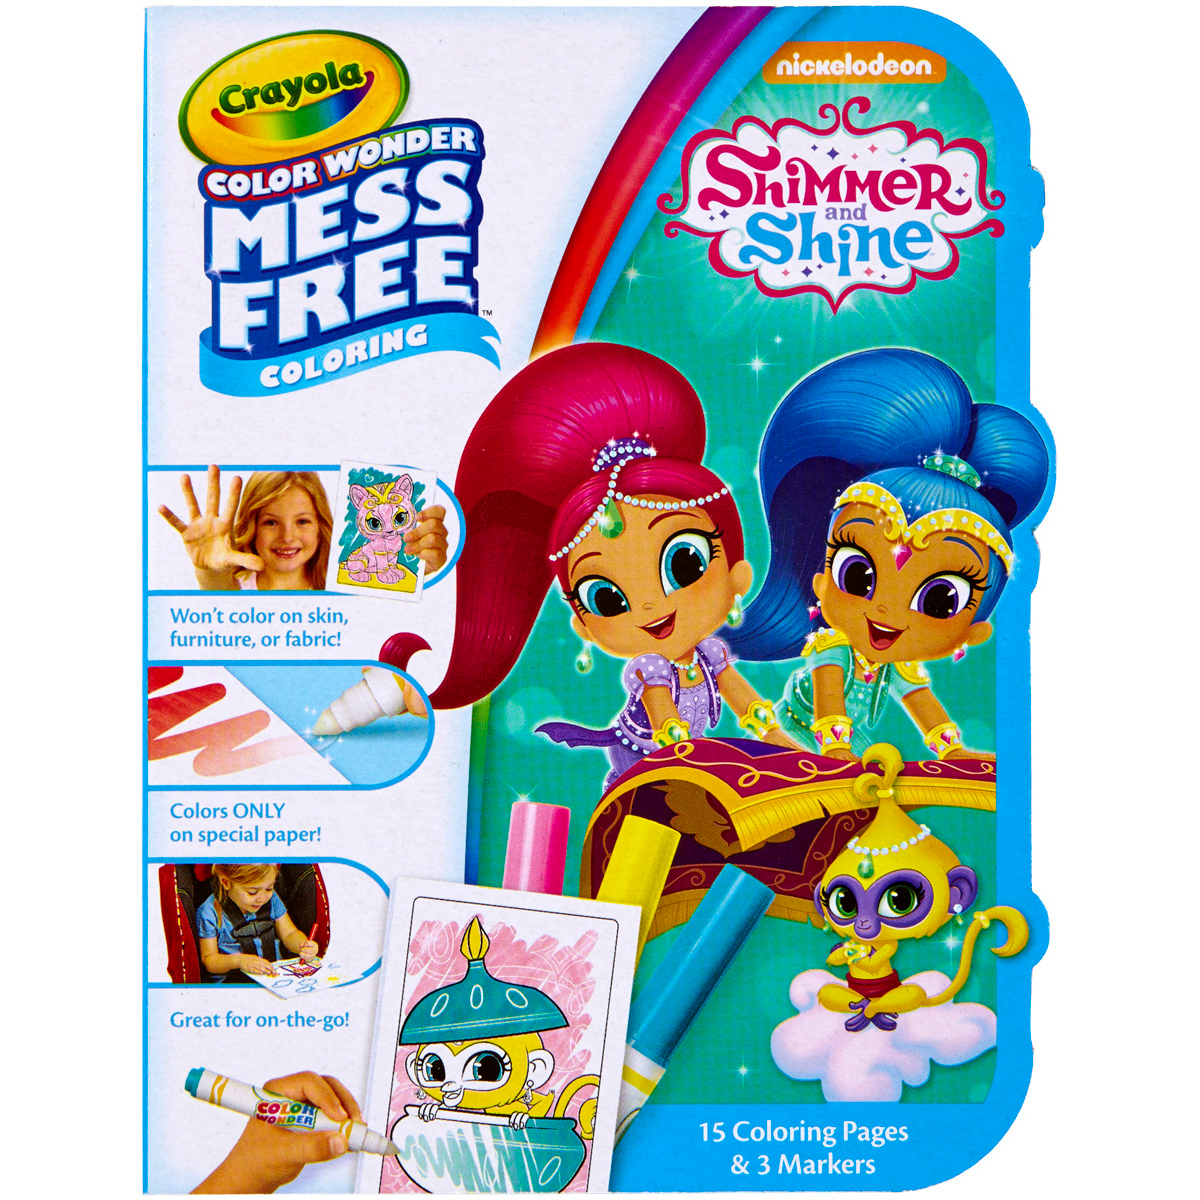 Crayola Color Wonder On The Go Coloring Kit - Shimmer & Shine